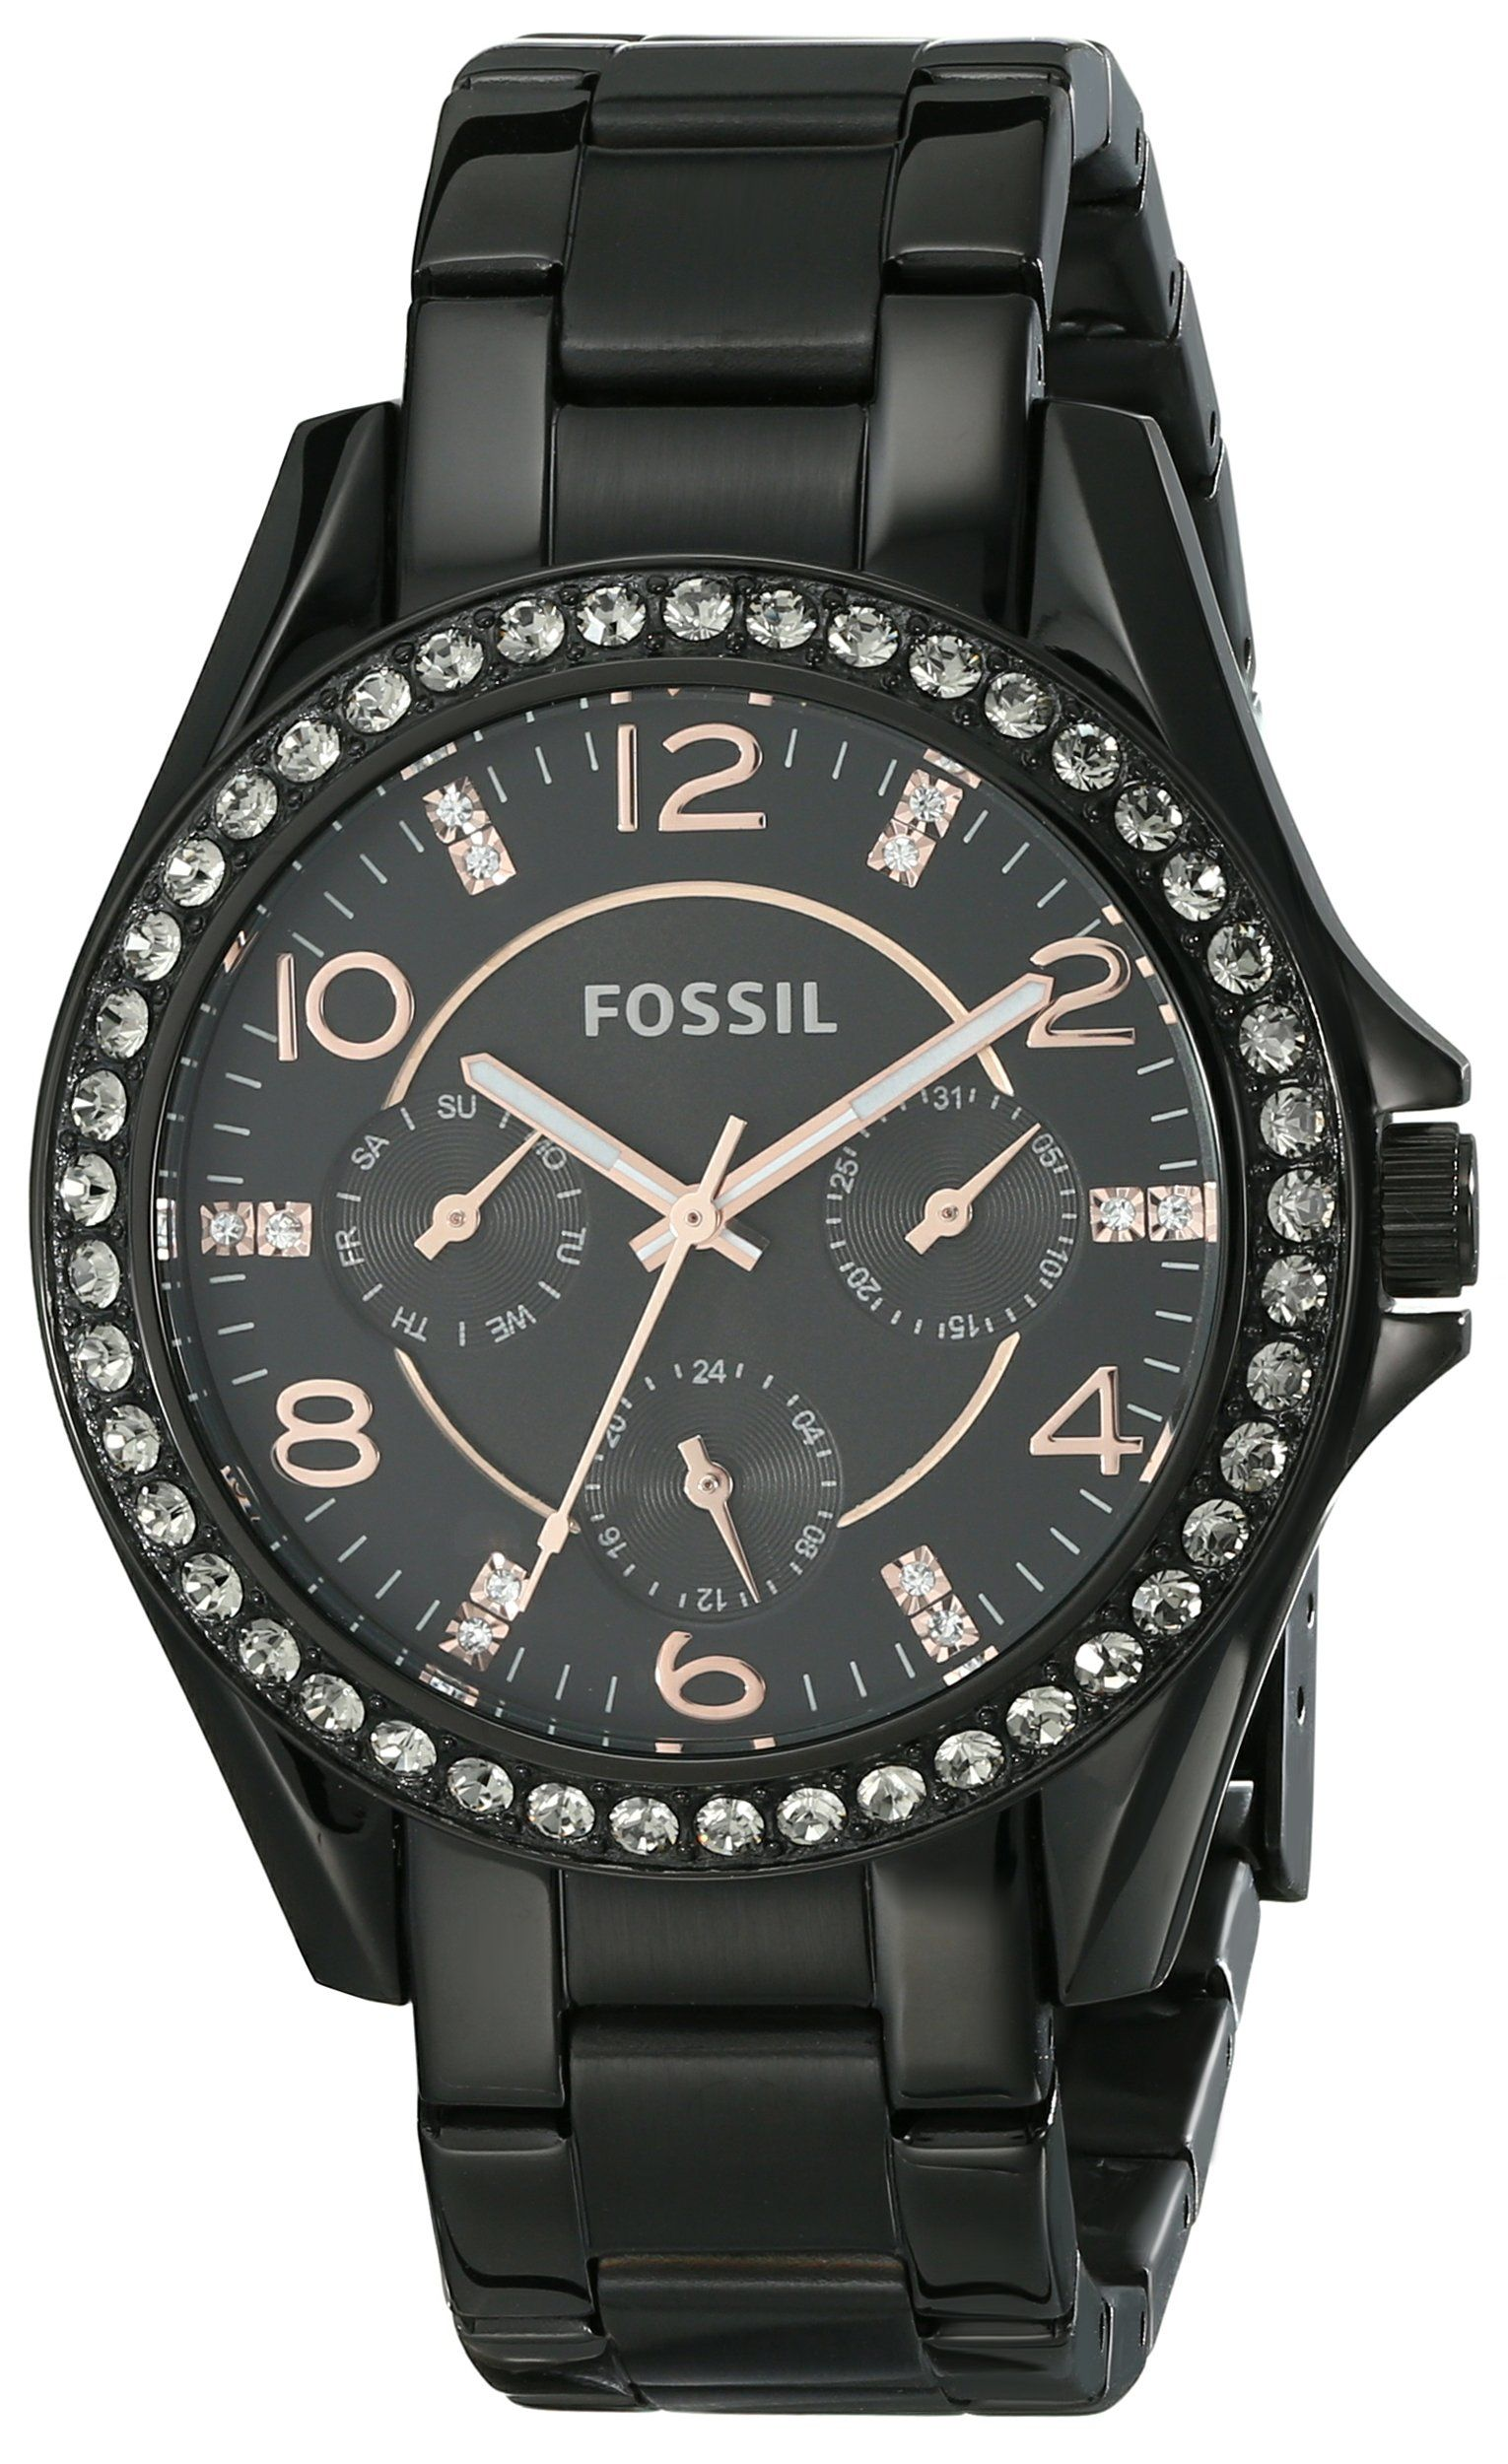 84b8c0fb37b904 Amazon.com: Fossil Women's ES3644 Riley Multifunction Stainless Steel Watch  - Black with Rose Gold-Tone Accents: Clothing